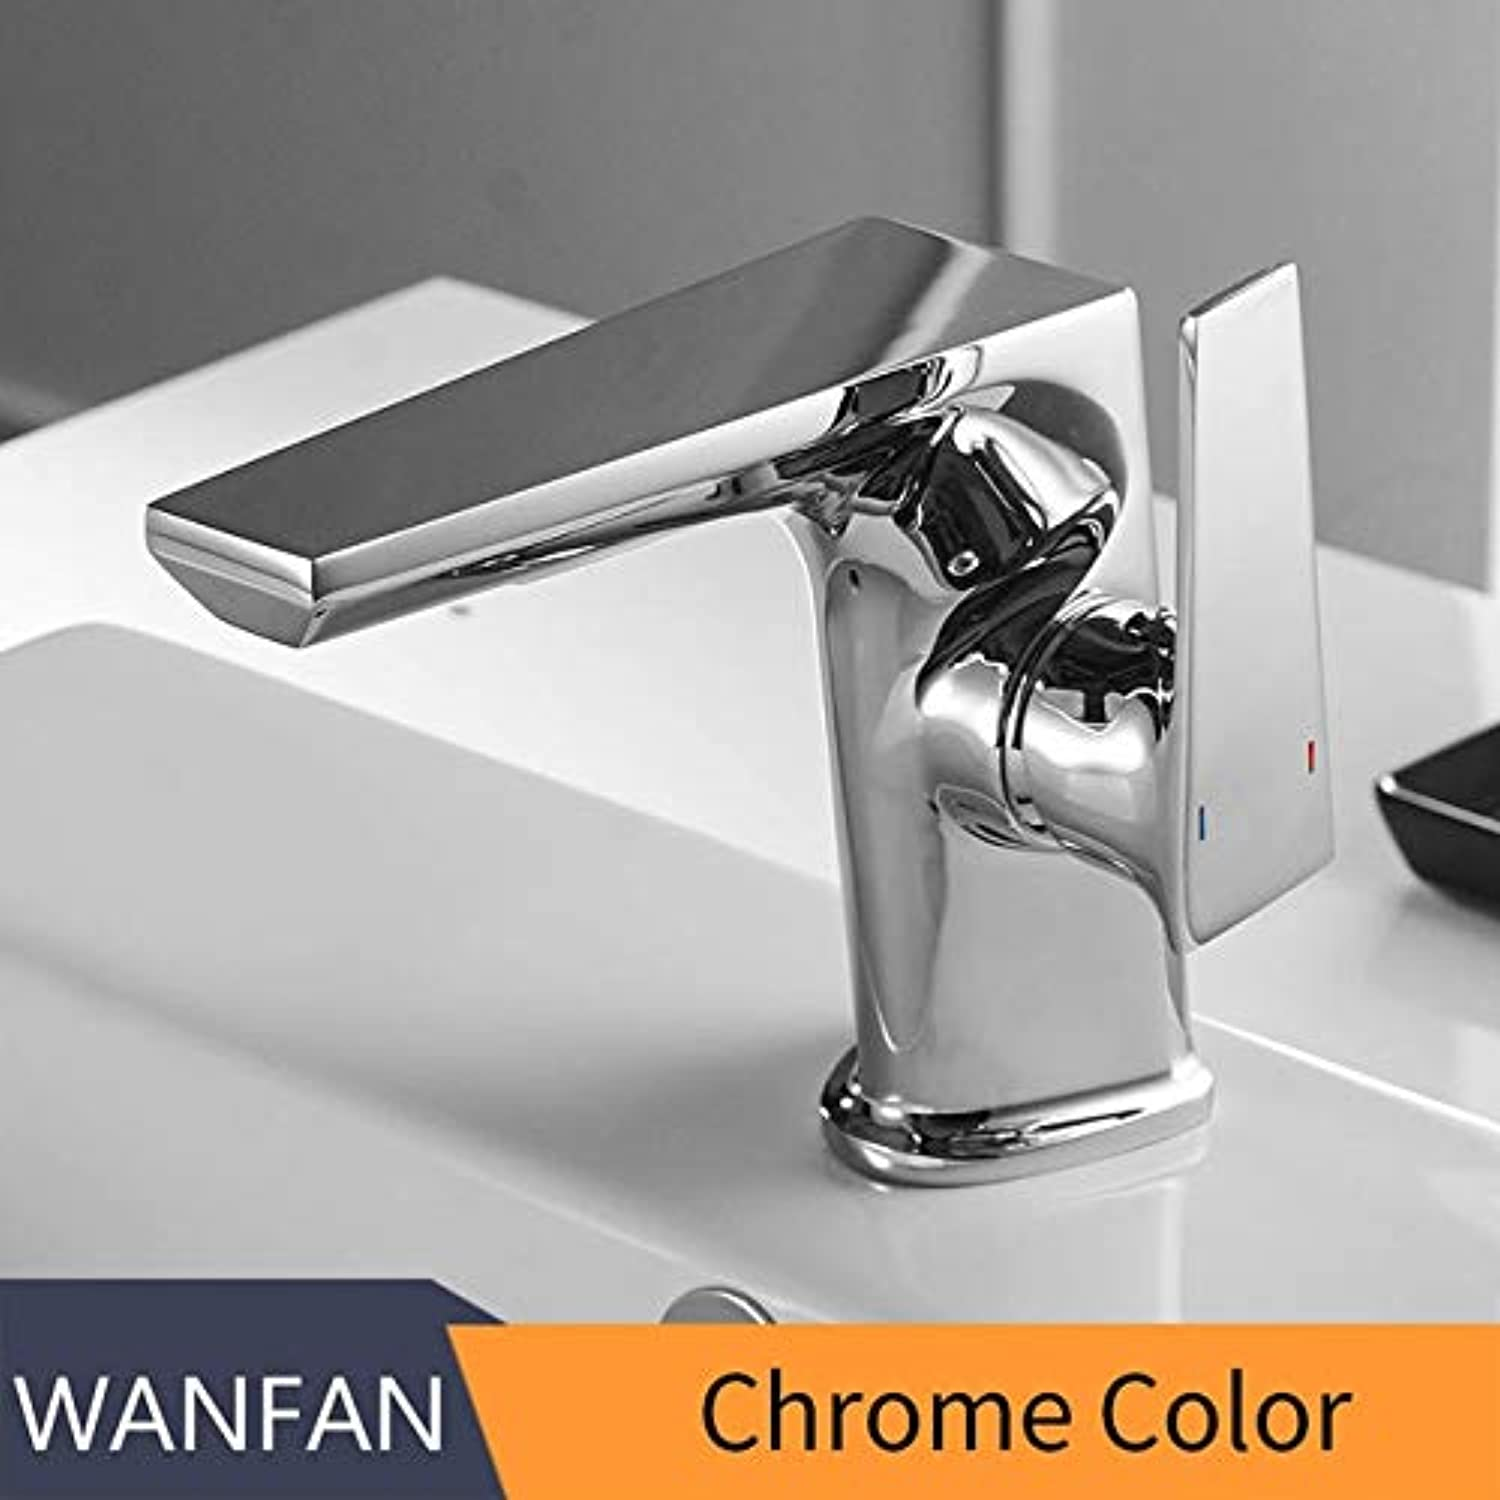 U-Enjoy Chandelier Faucet Retro Basin Chrome Taps Top Quality Bathroom Faucet Sink Faucet Single Hole Deck Vintage Handle Wash Hot Cold Mixer Tap Crane Free Shipping [Chrome]